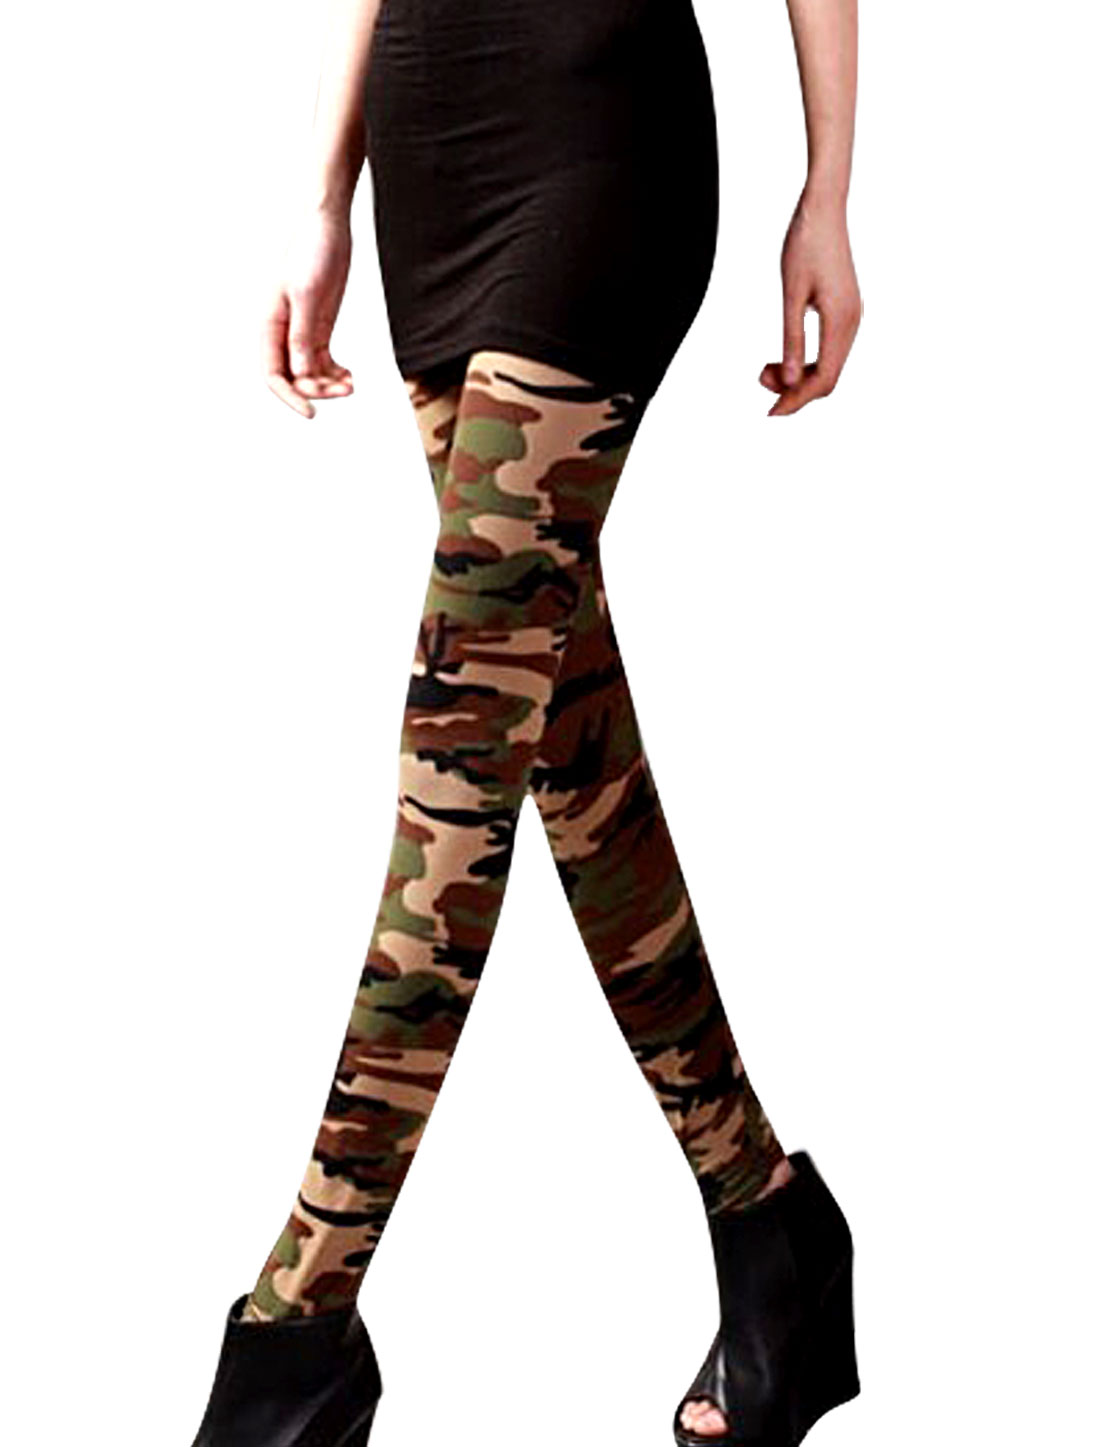 Ladies Chic Army Green Brown Camouflage Pattern Skinny Long Leggings XS